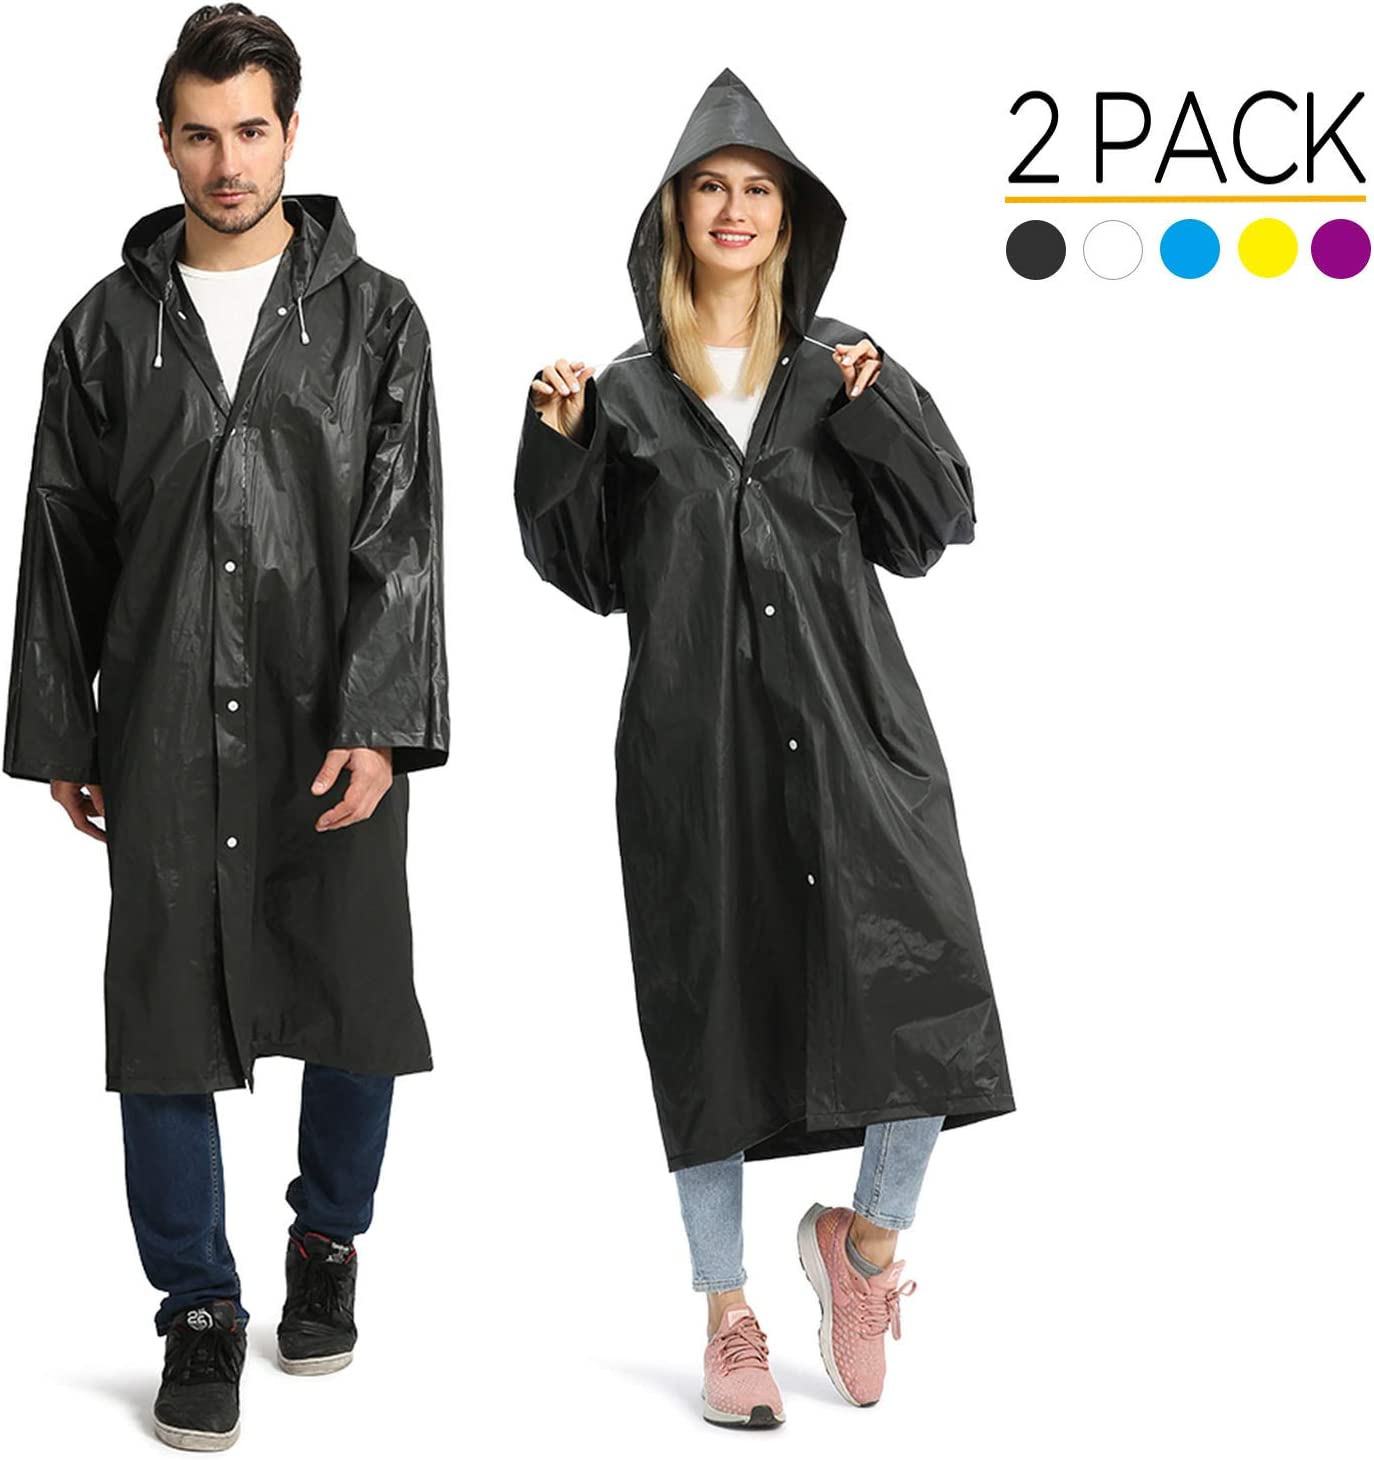 LIGHTWEIGHT WATERPROOF ADULTS RAINCOAT CAMPING MAC NEW